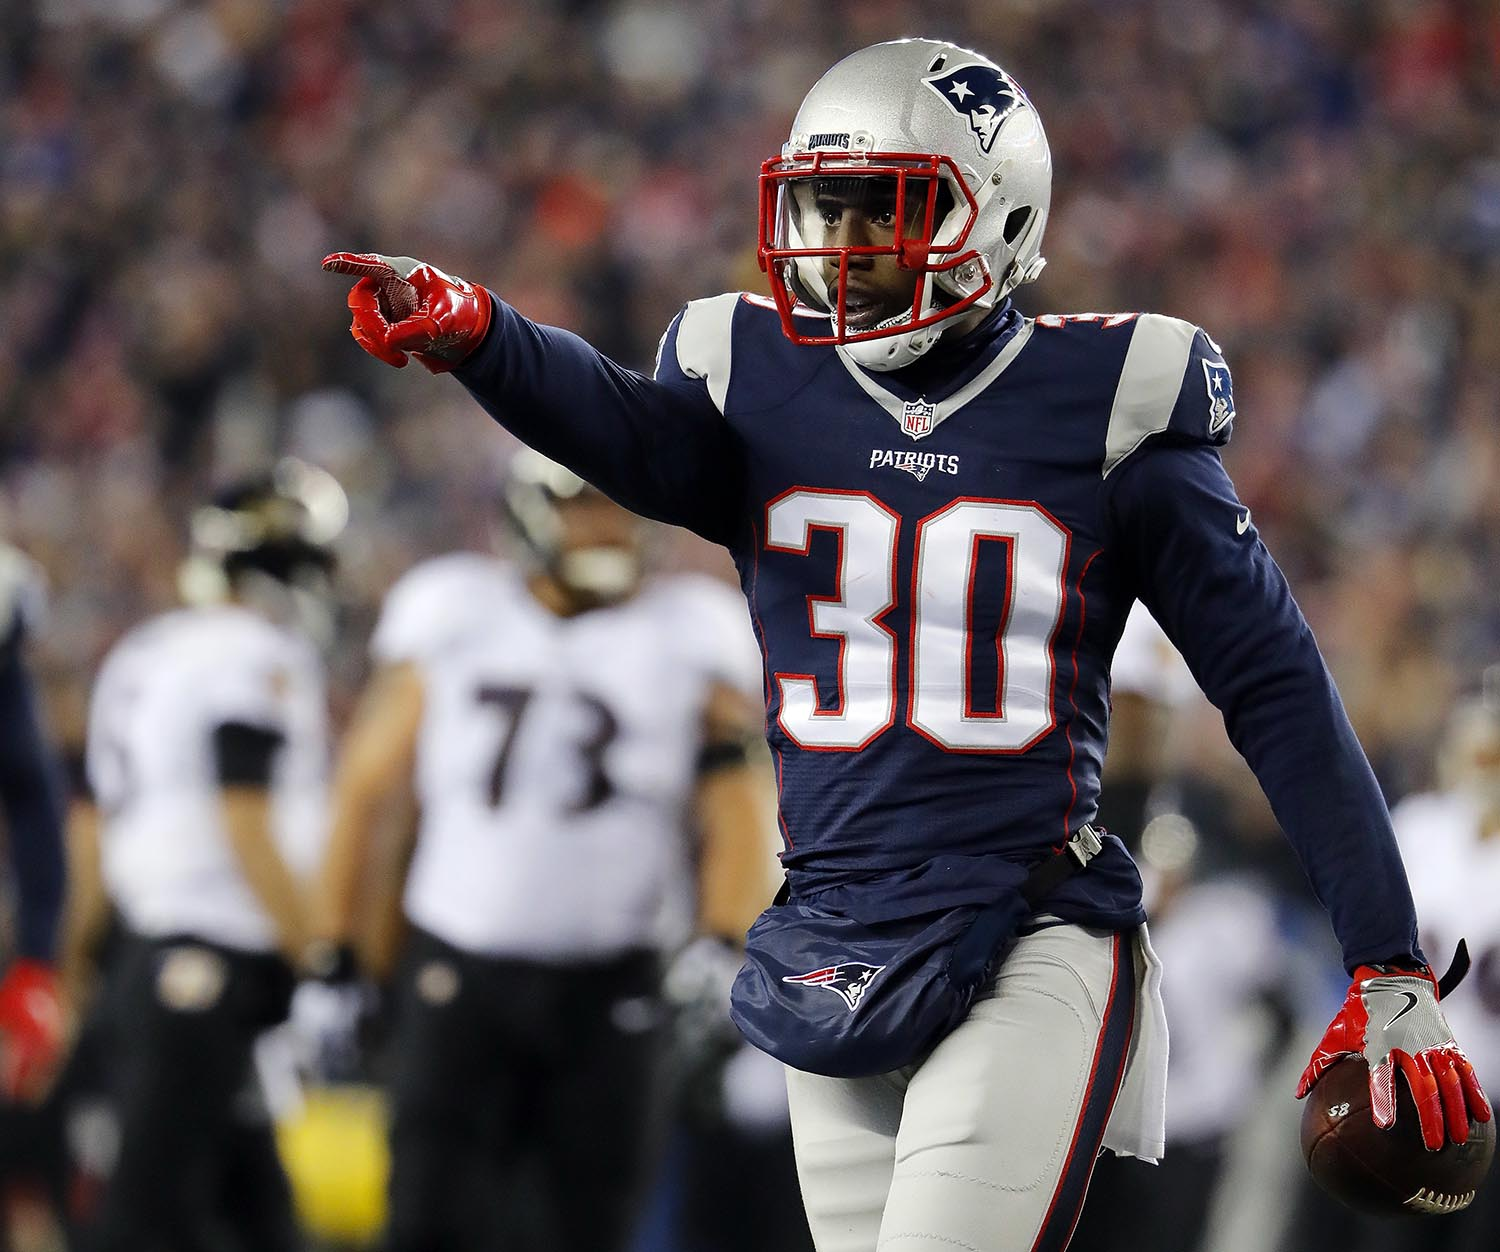 """<div class=""""meta image-caption""""><div class=""""origin-logo origin-image ap""""><span>AP</span></div><span class=""""caption-text"""">New England Patriots' defensive back Duron Harmon attended Rutgers University in New Brunswick, NJ. (Winslow Townson/AP Images for Panini)</span></div>"""